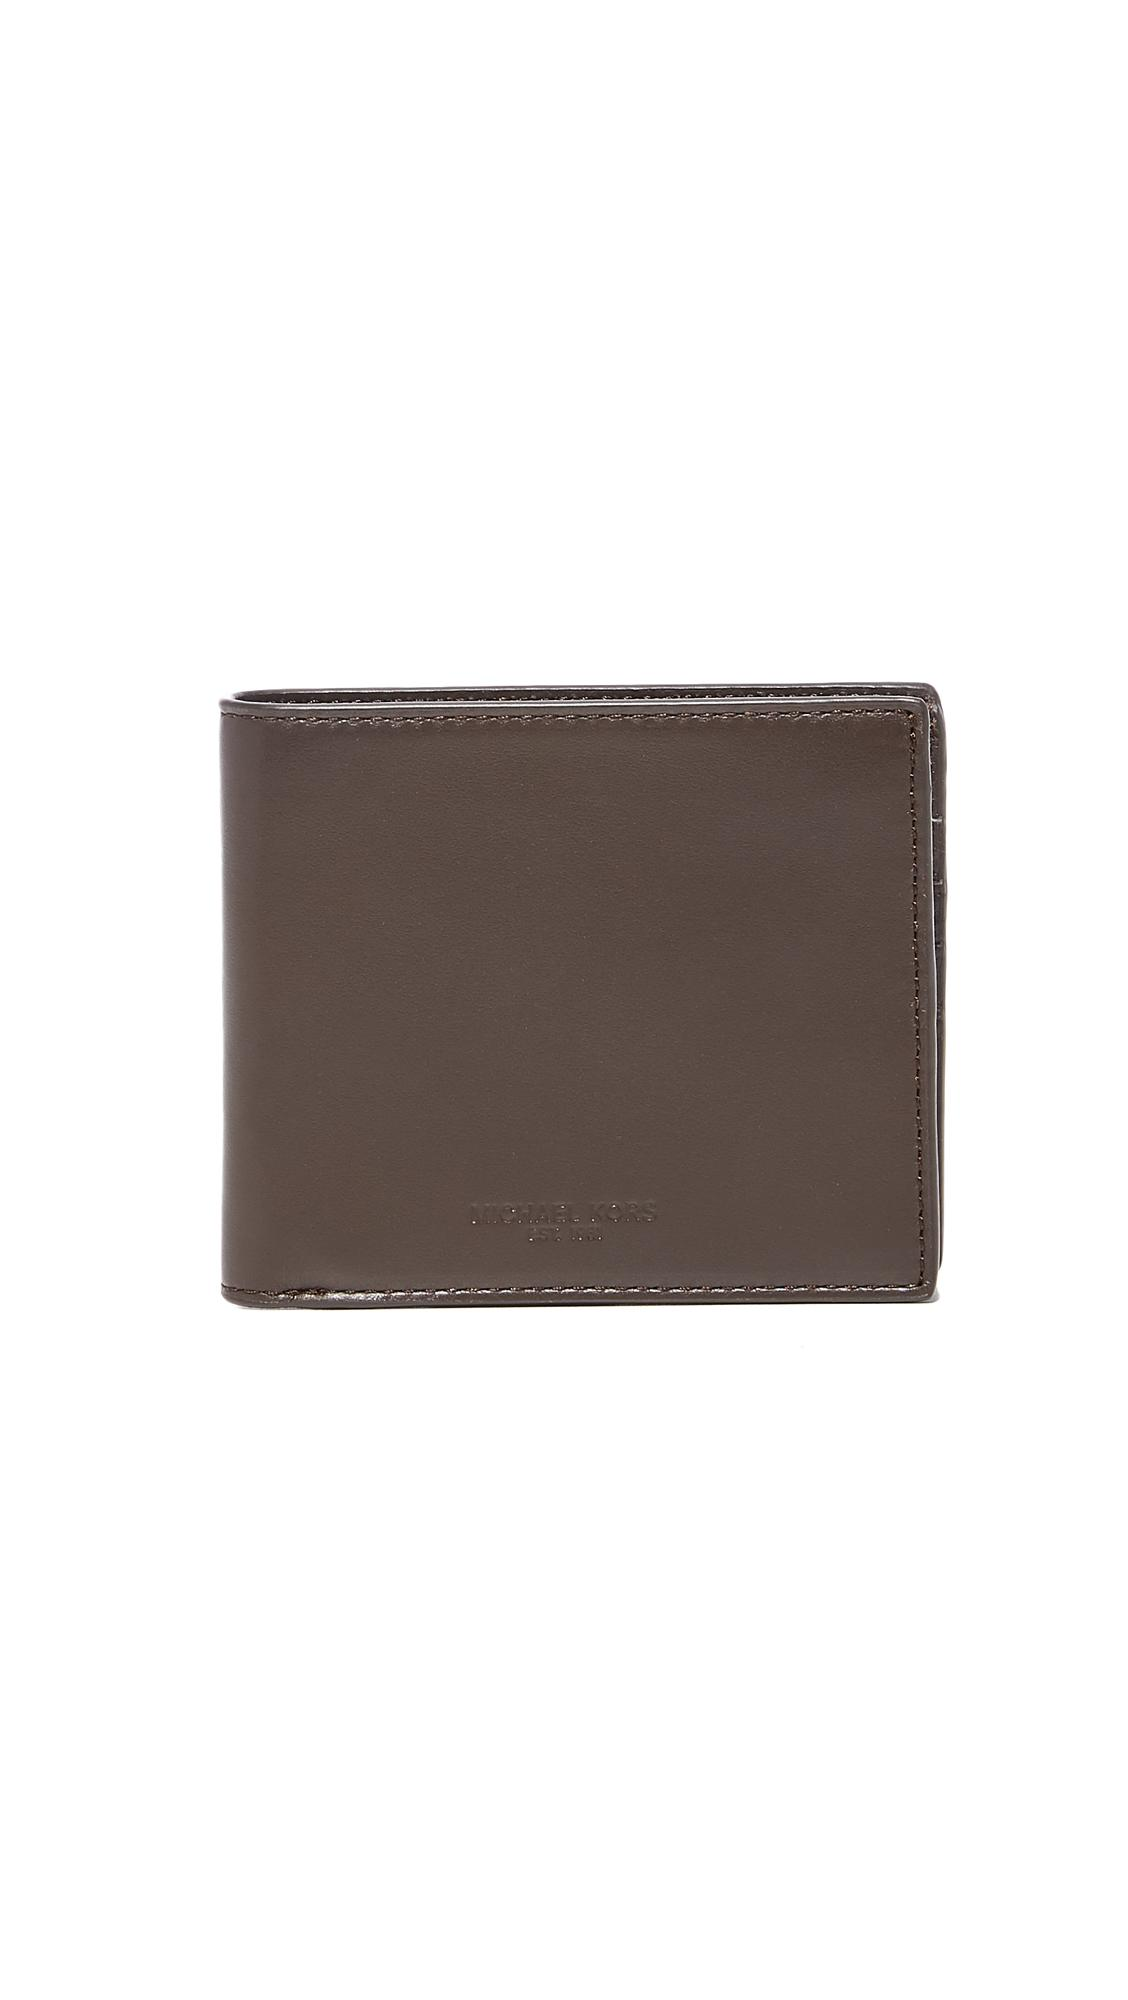 89472f119a08 Michael Kors Odin Leather Billfold in Brown for Men - Lyst